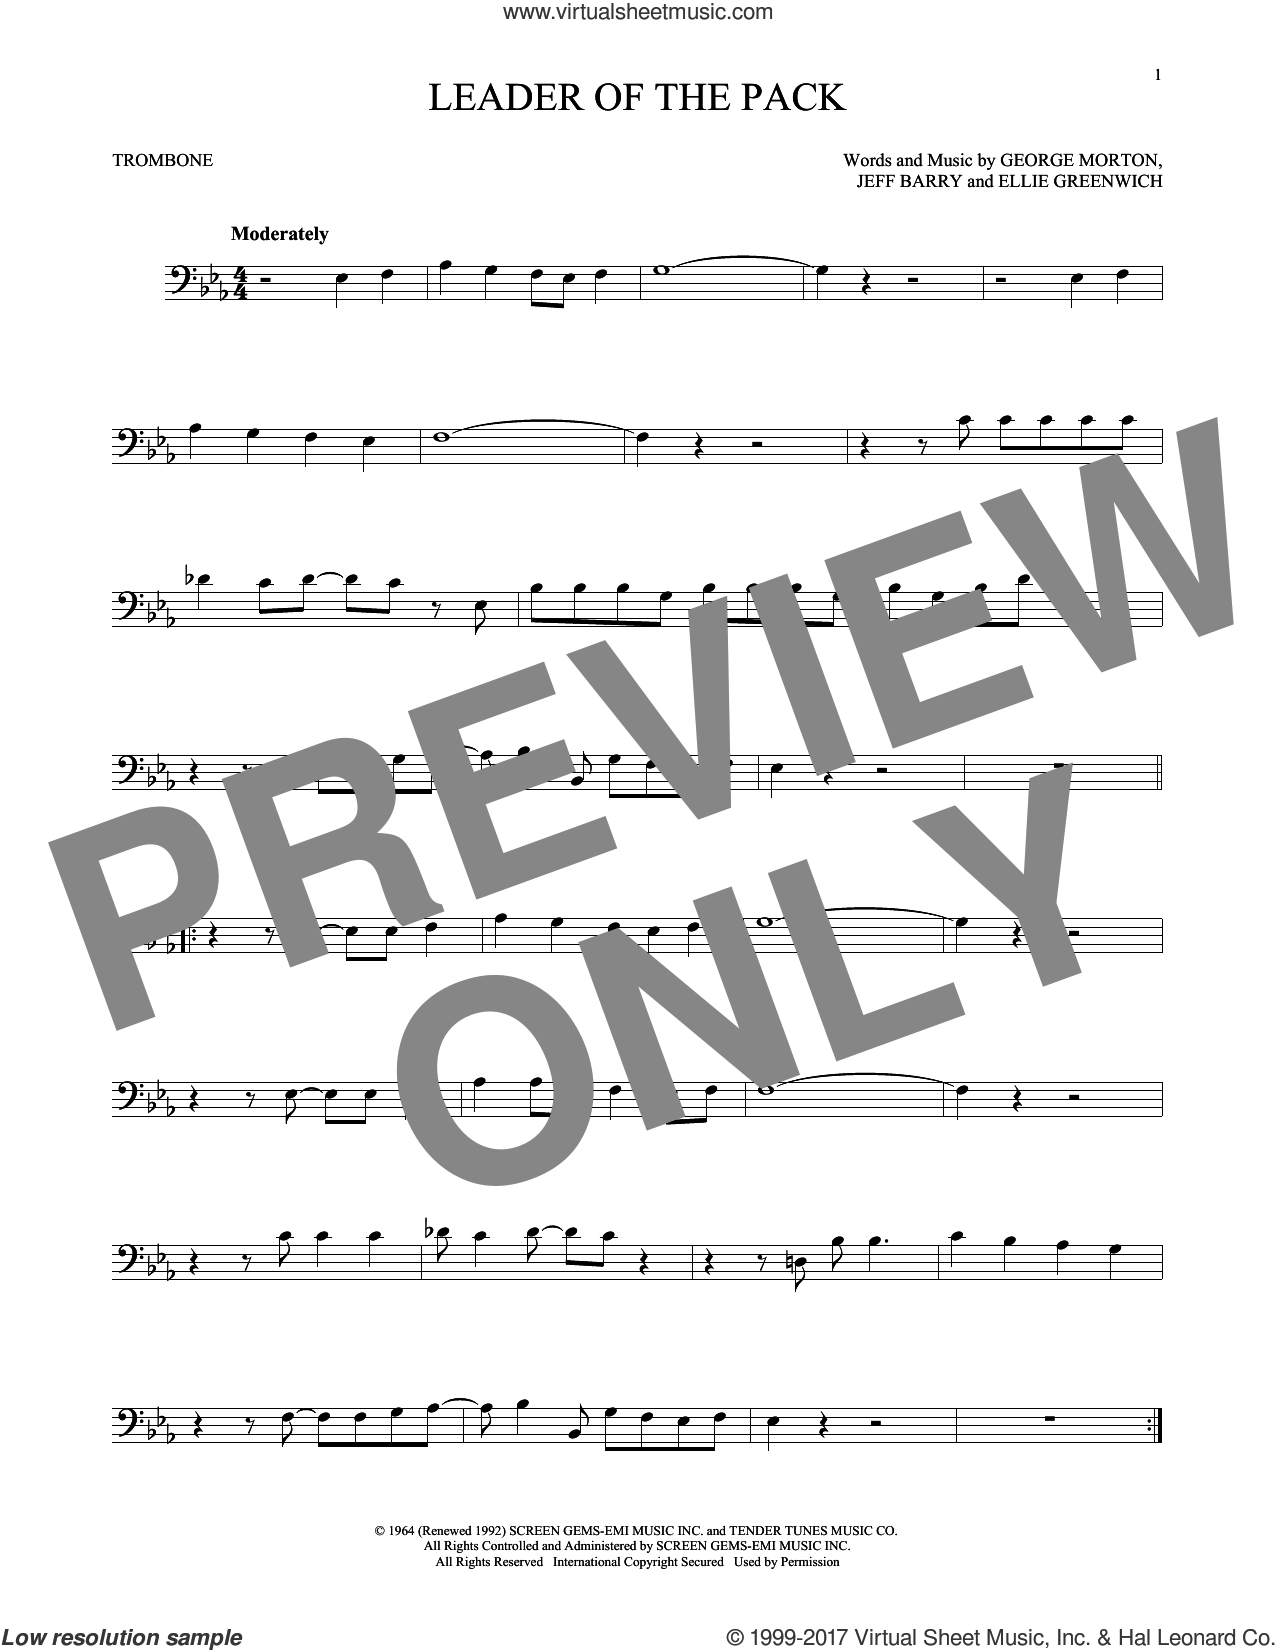 Leader Of The Pack sheet music for trombone solo by The Shangri-Las, Ellie Greenwich, George Morton and Jeff Barry, intermediate. Score Image Preview.